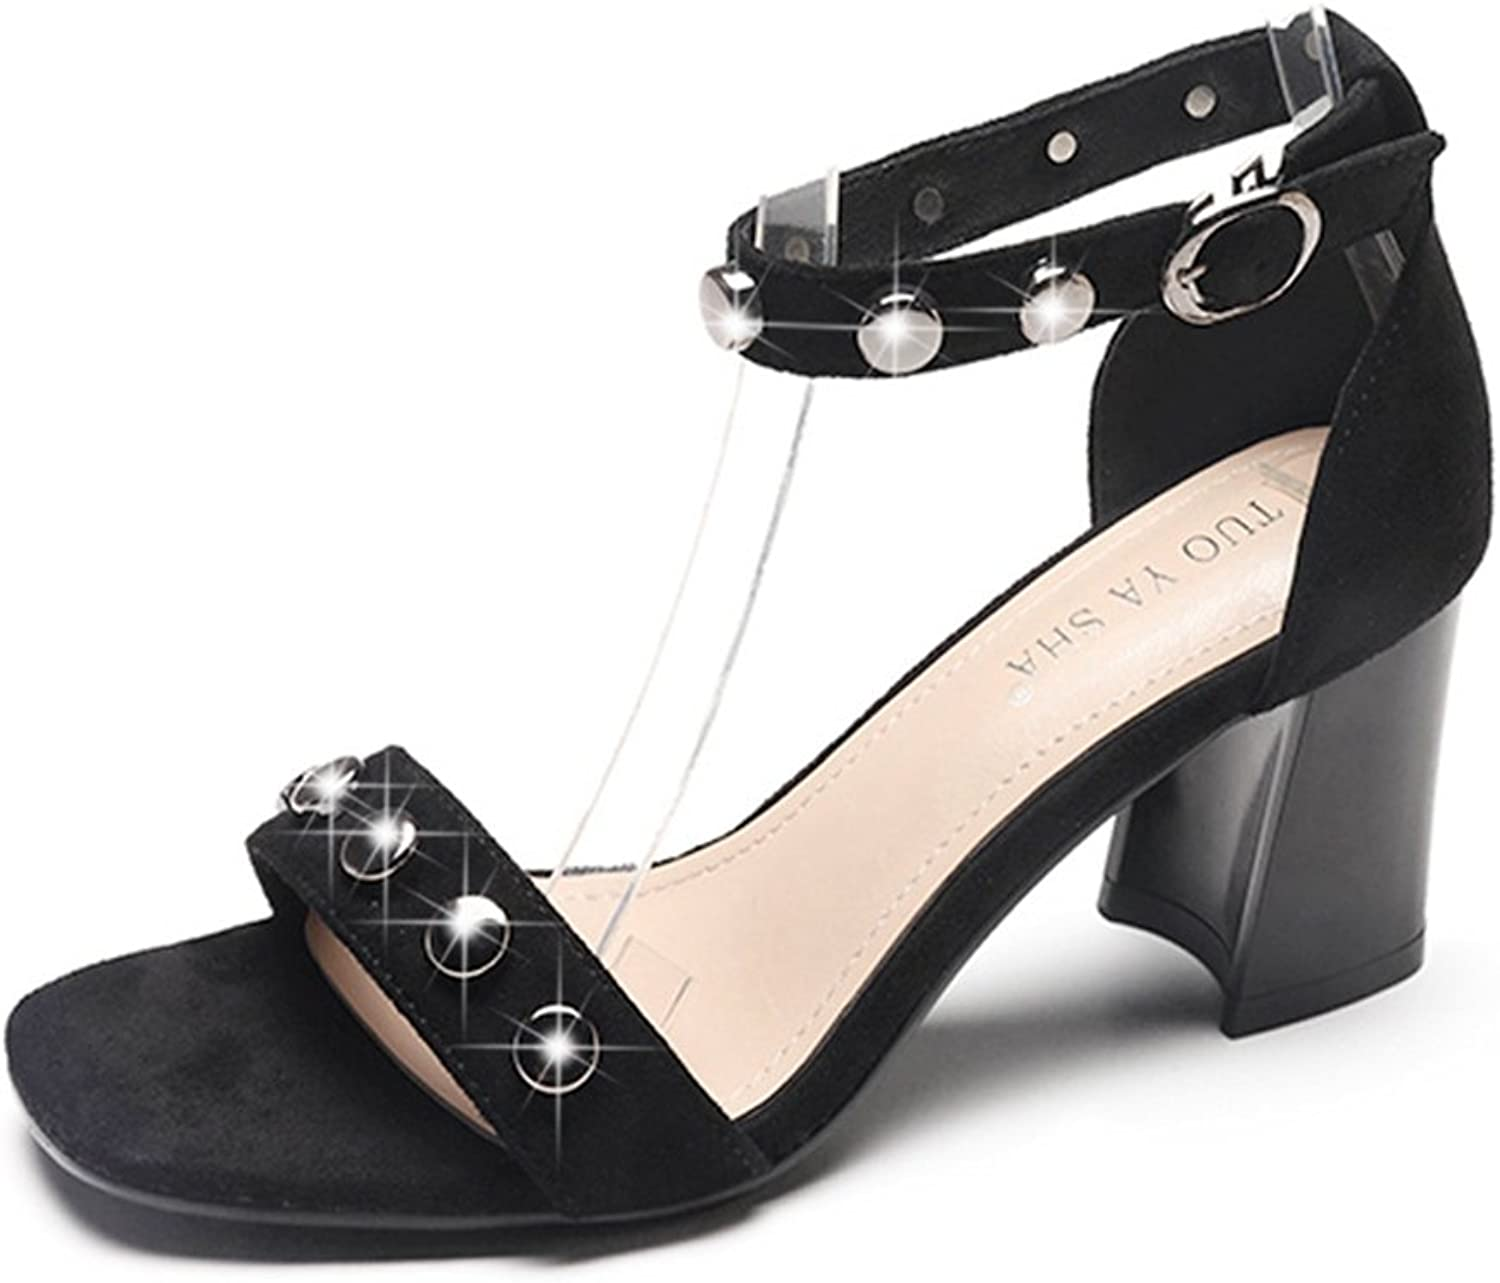 T-JULY Women's Rivets Studded Strappy Suede Open Toe Slides Sandals with Buckle Chunky Heel Sexy Slip On Dressy shoes